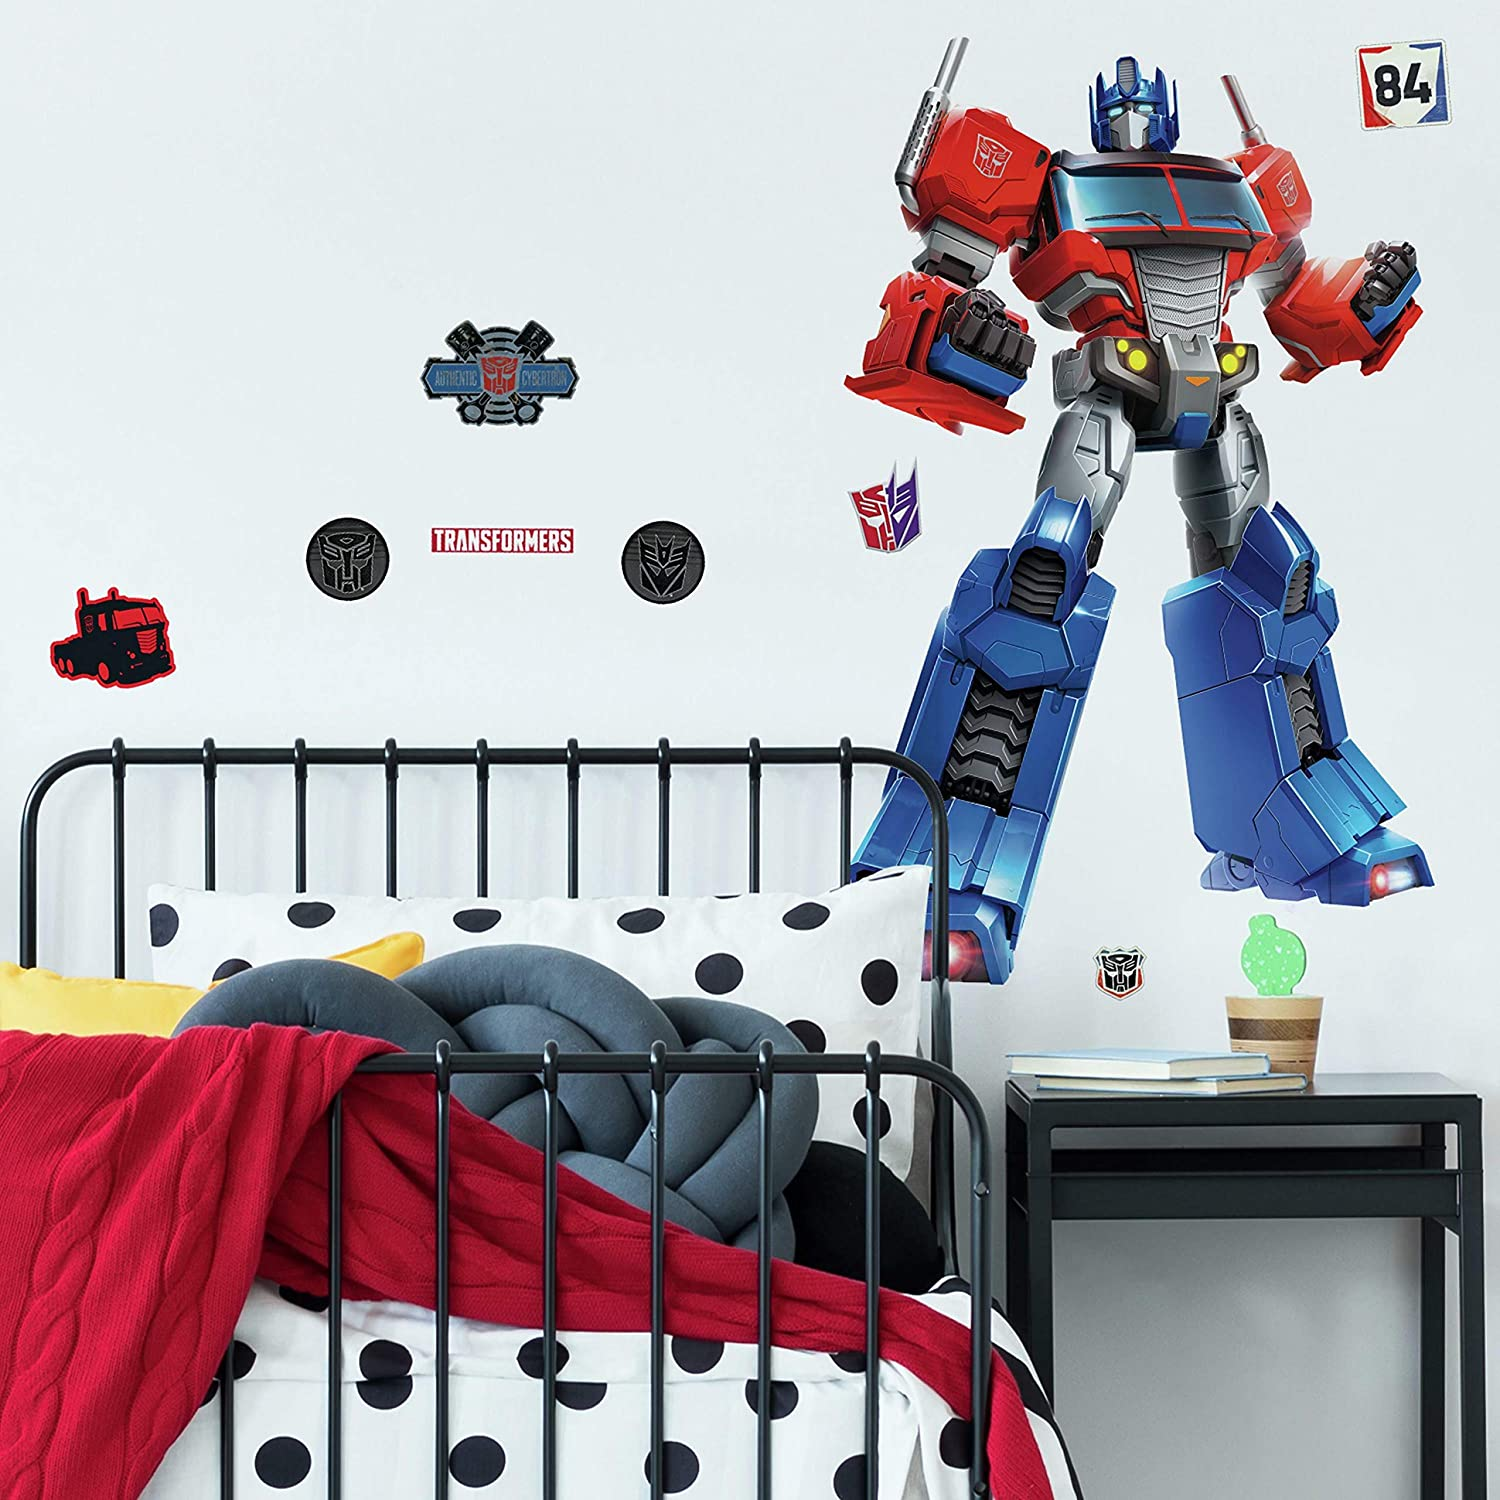 RoomMates Classic Optimus Prime Peel and Stick Giant Wall Decals